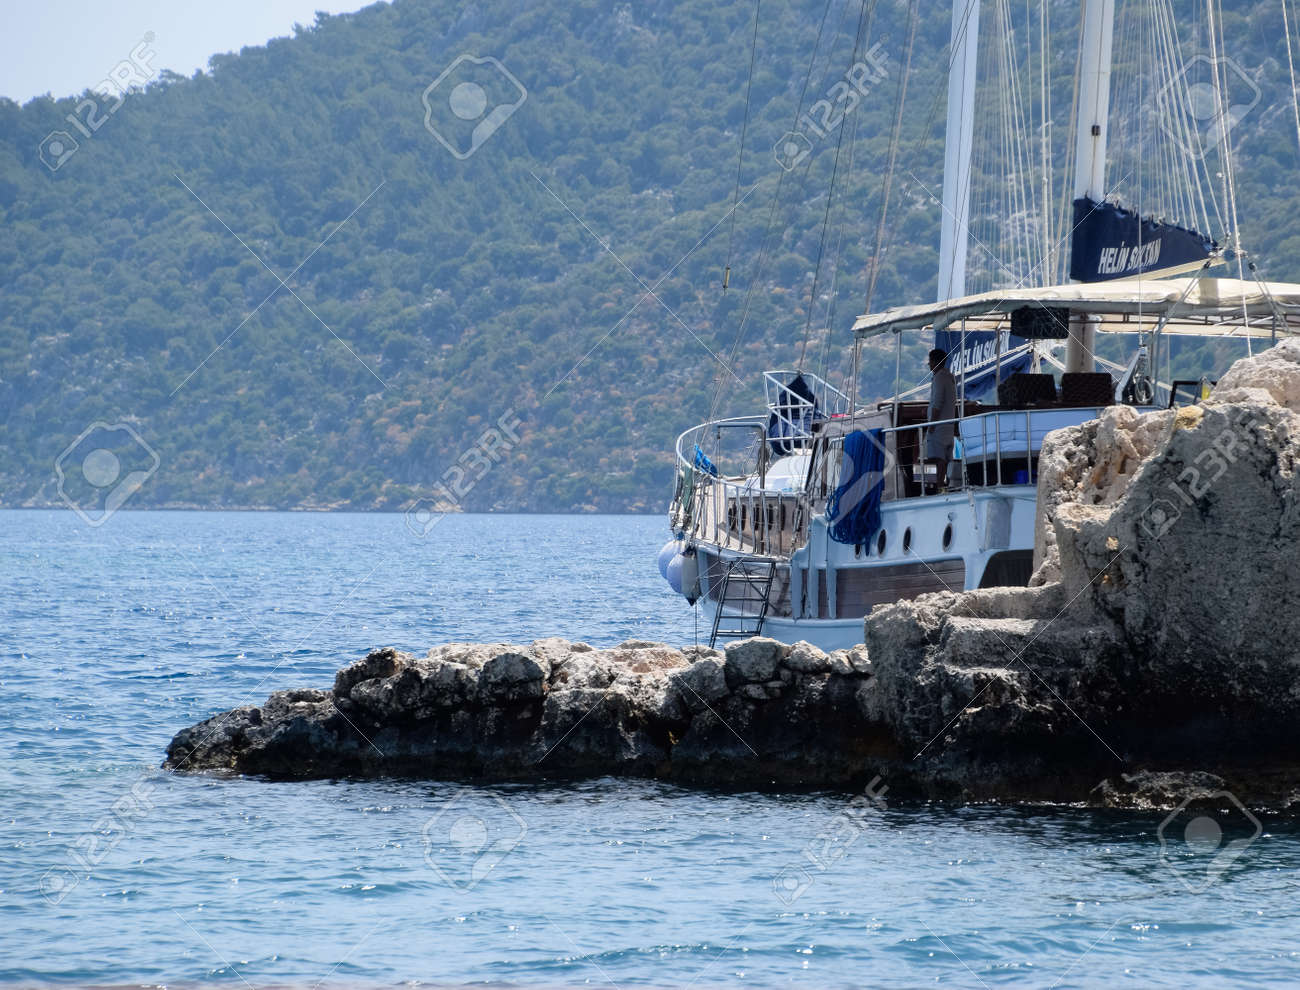 Demre, Turkey - May 21, 2019: The ruins of the city of Mira, Kekova, an ancient megalithic city destroyed by an earthquake. - 133522572